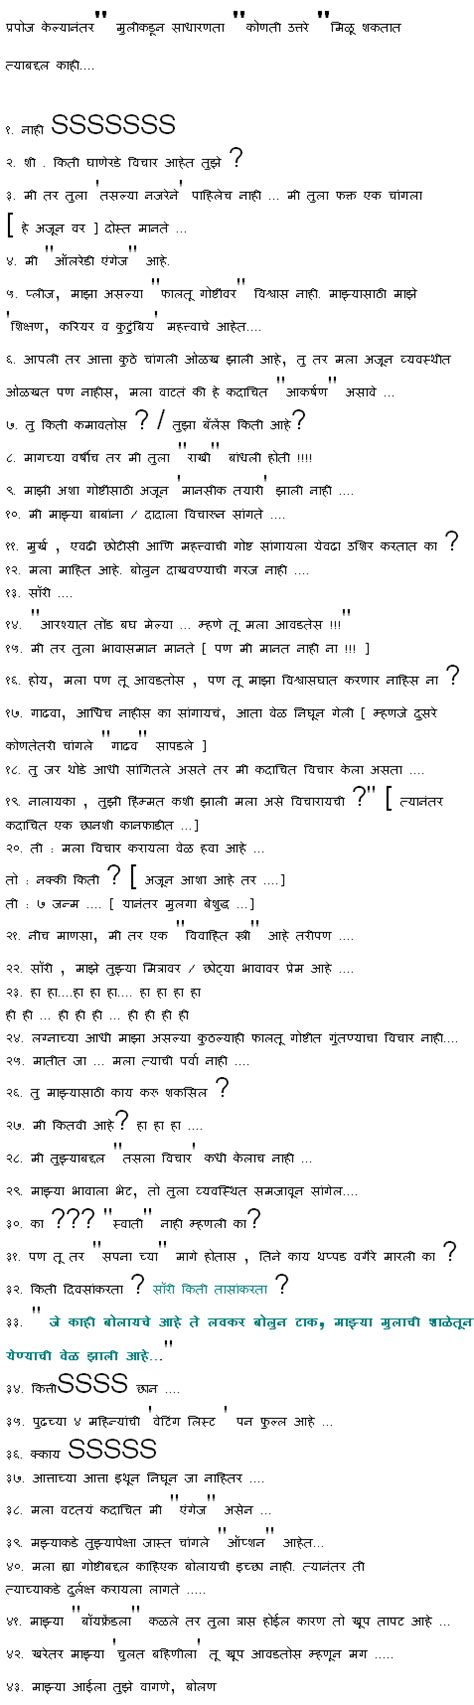 biography of abraham lincoln in marathi propose quotes in marathi quotesgram